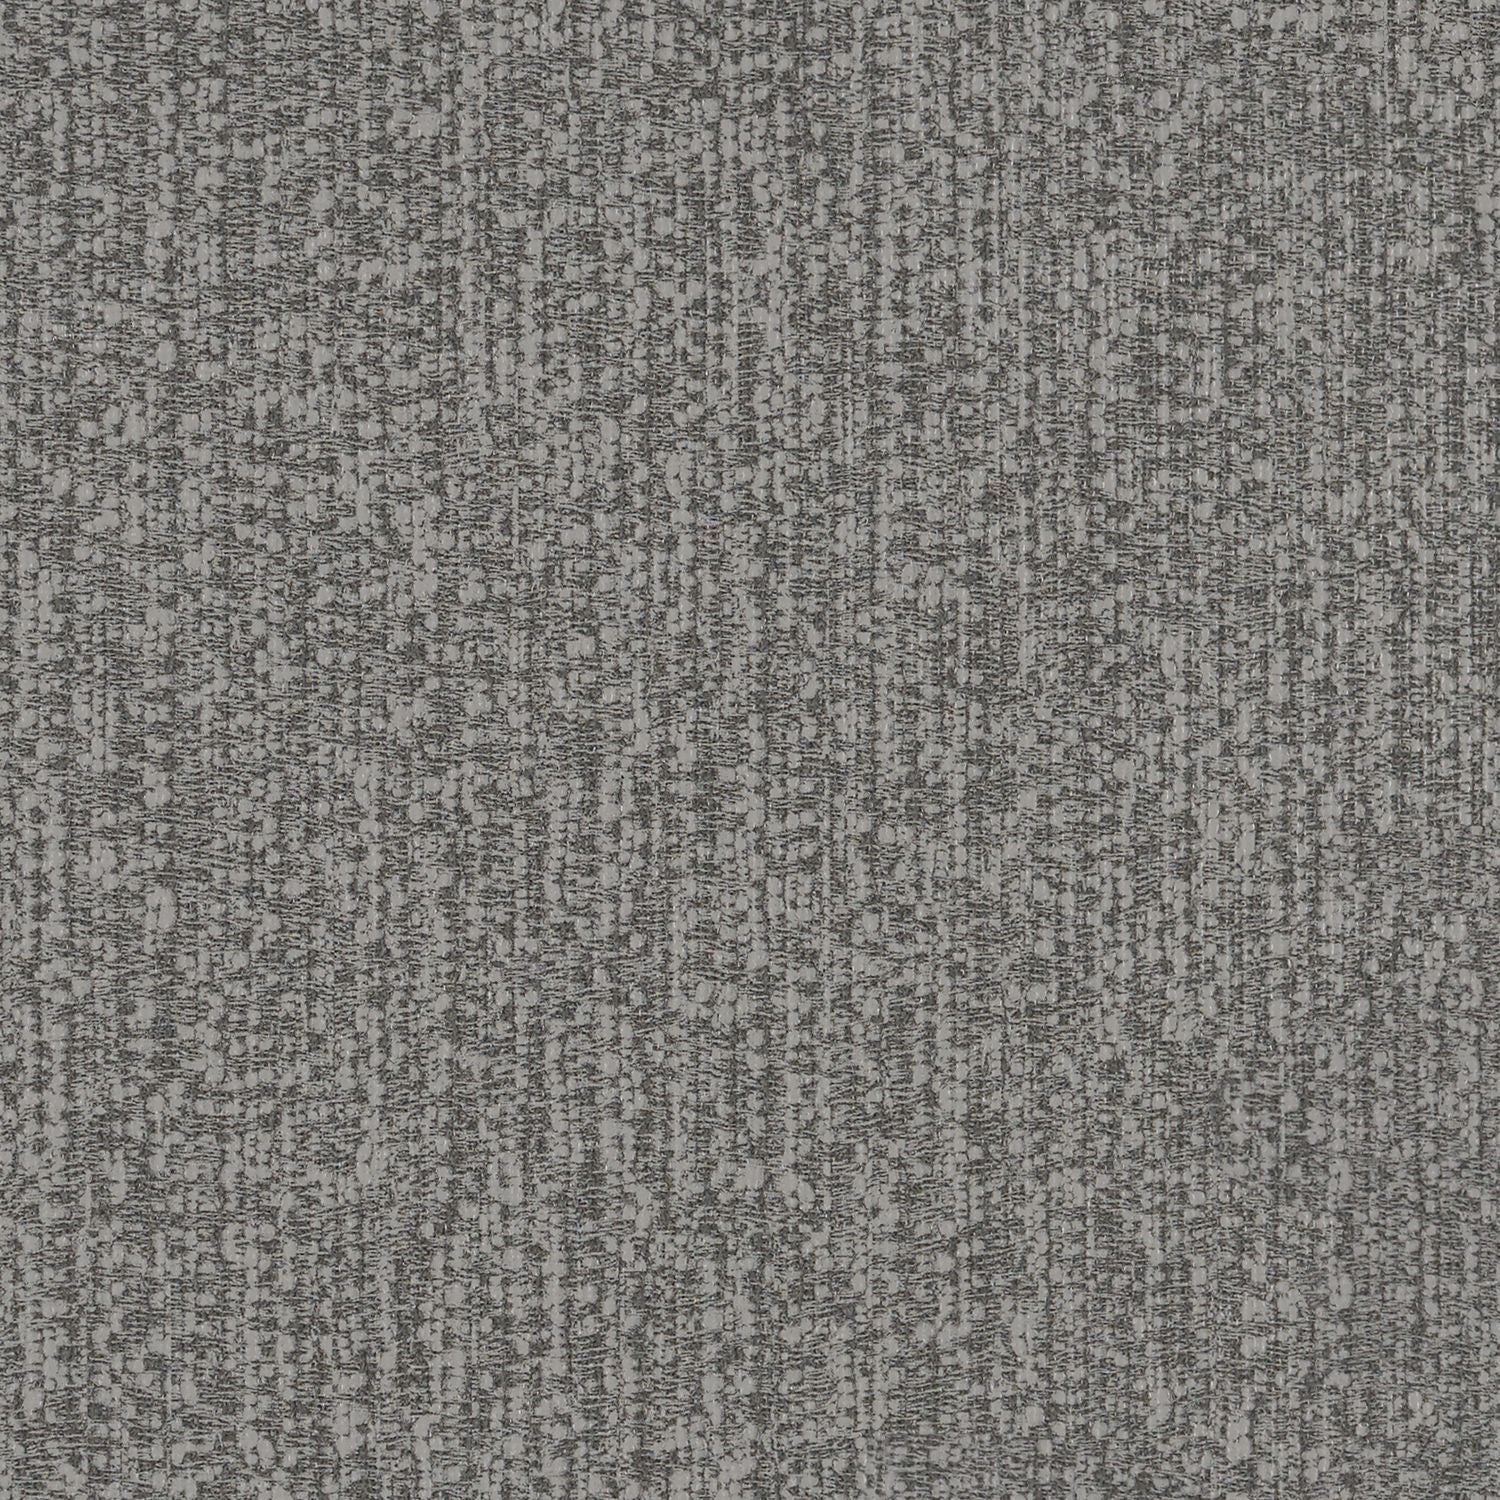 Grey Flannel|4053-03-G108|Grey Flannel 4053-03-G108